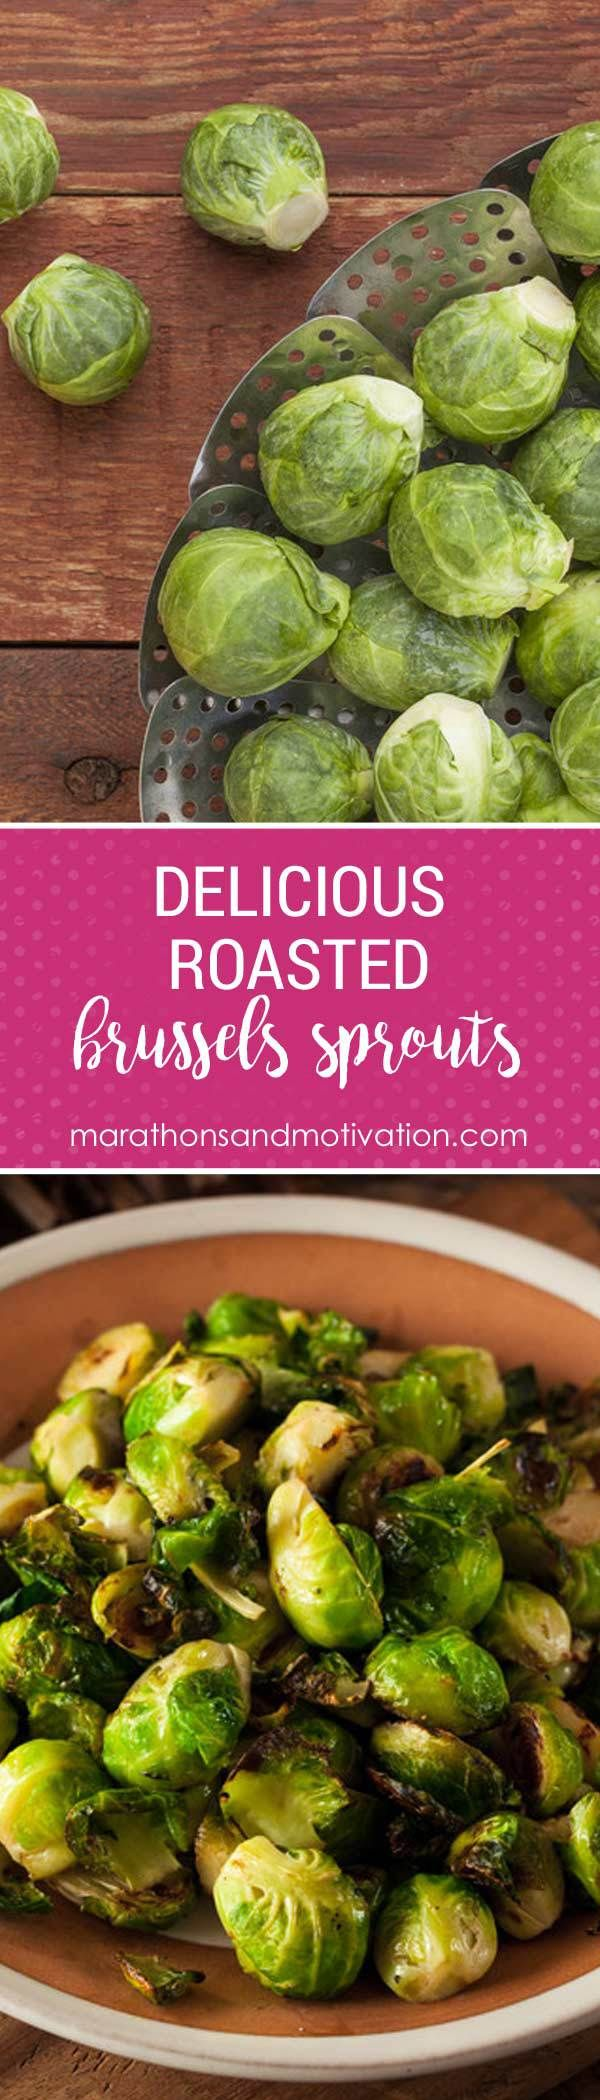 Roasted Brussels Sprouts made with Coconut Oil, Butter, and Lemon Juice are a quick and easy vegetable side dish that the entire family loves!